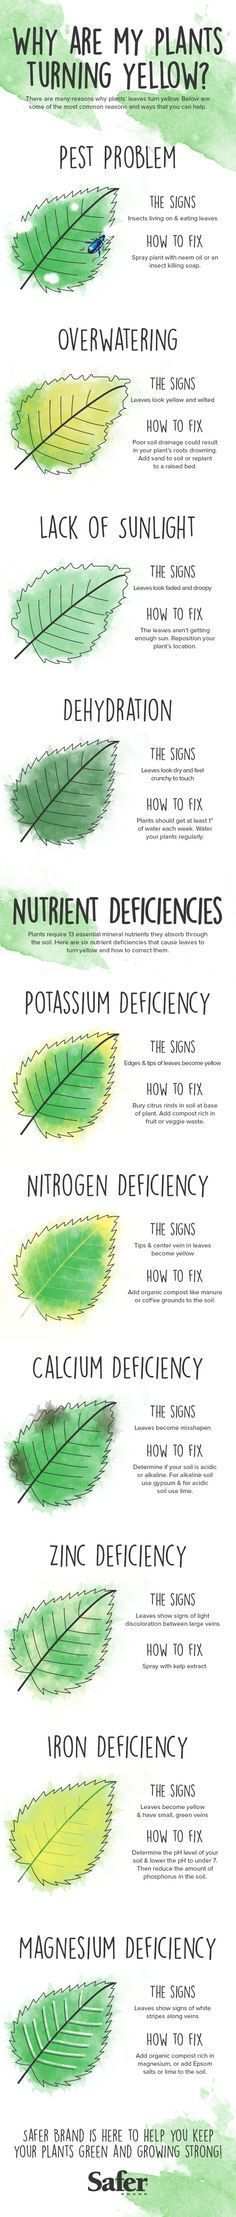 Why are my plants turning yellow? If your vegetable garden or house plants have gone from verdant to flavescent, it could be a sign of health issues like too much water or too few nutrients. A new infographic offers tips for getting to the root of the problem.